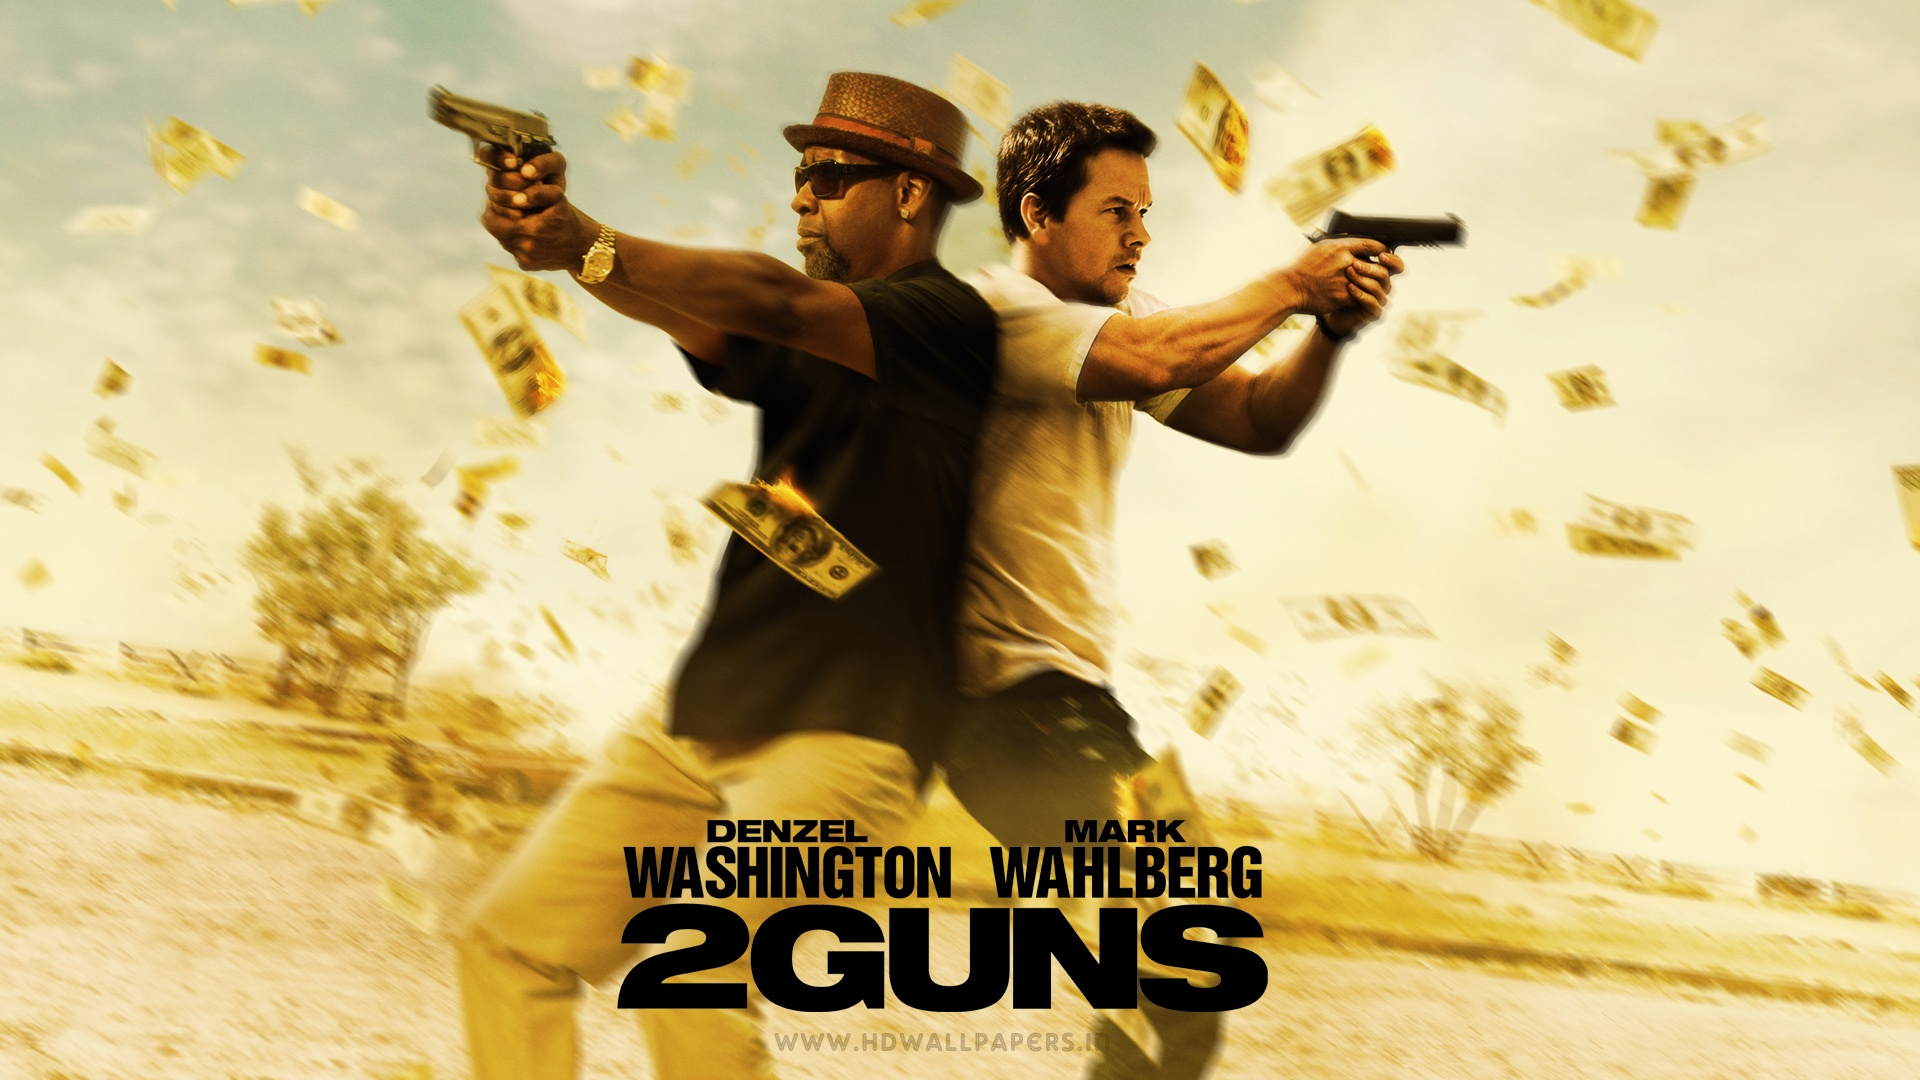 2 Guns Movie Wallpapers In Jpg Format For Free Download